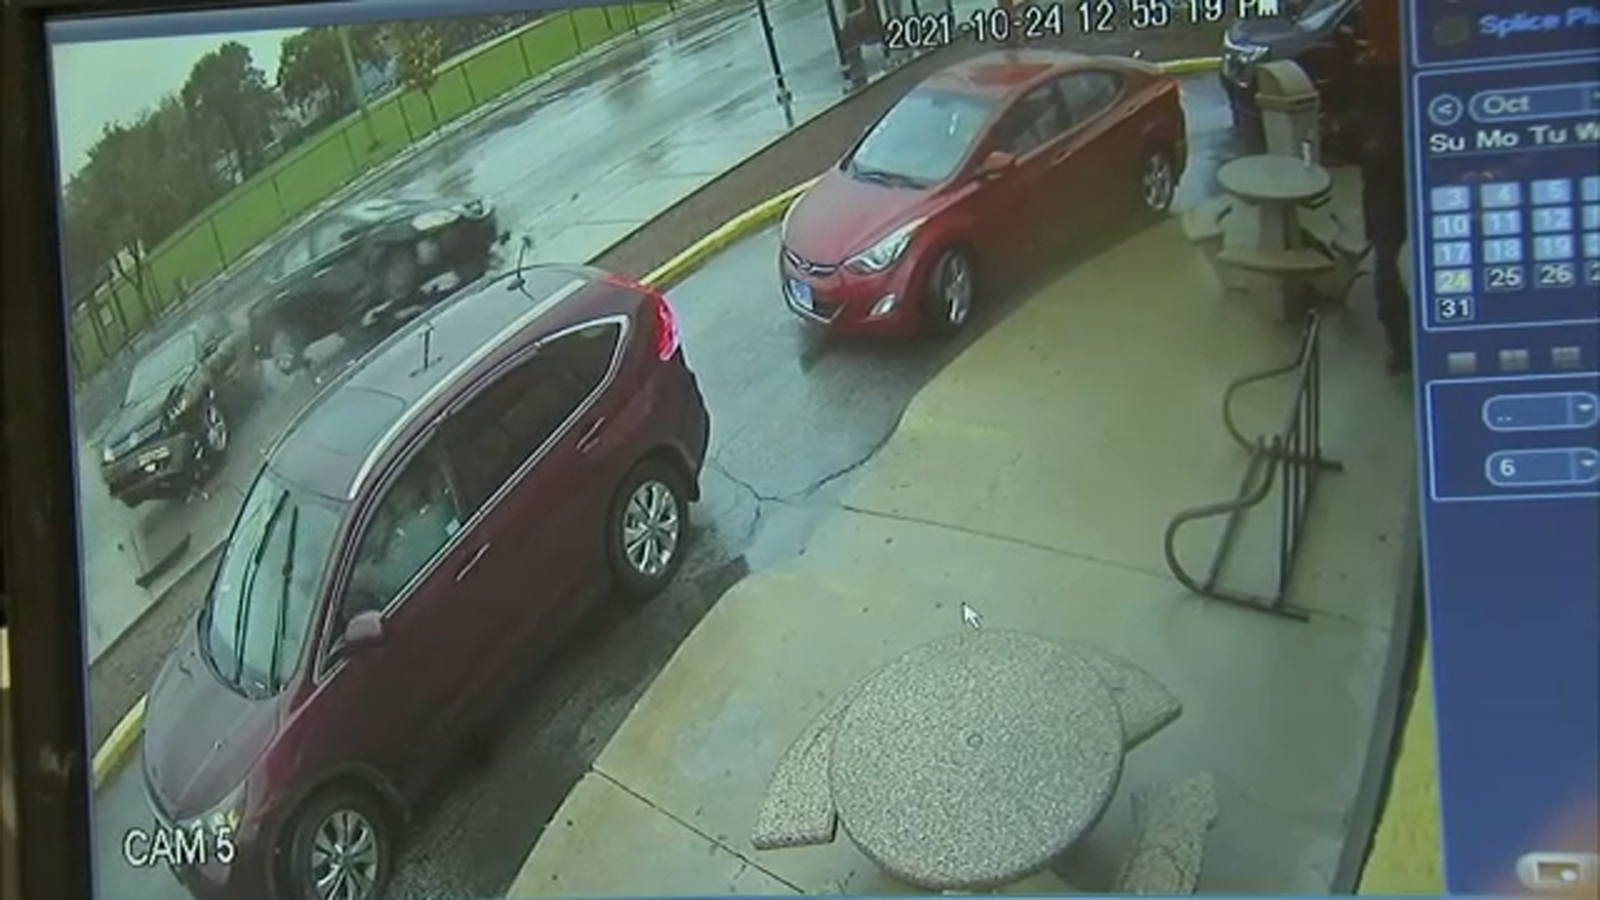 Video shows moments after shooting, crash